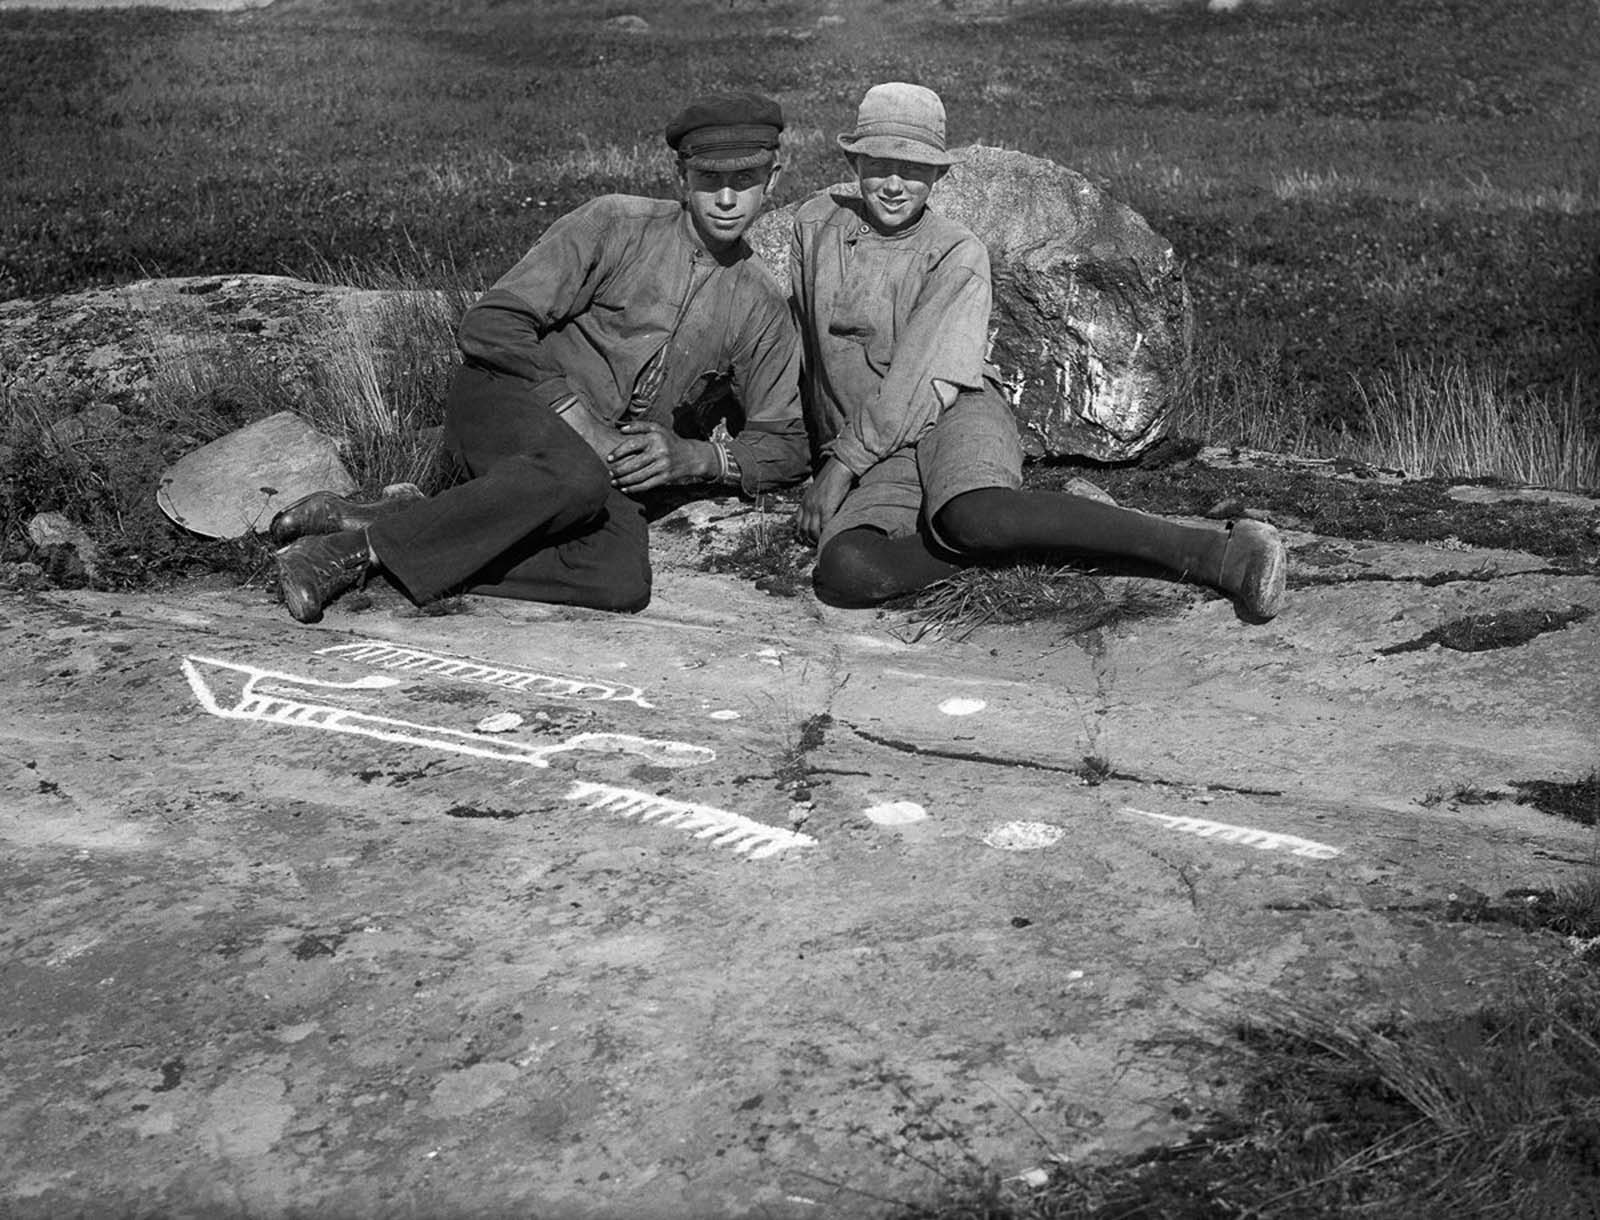 Boys with a prehistoric rock carving from the Bronze Age (c. 1800-500 BC) in Stora Herrebro. 1924.